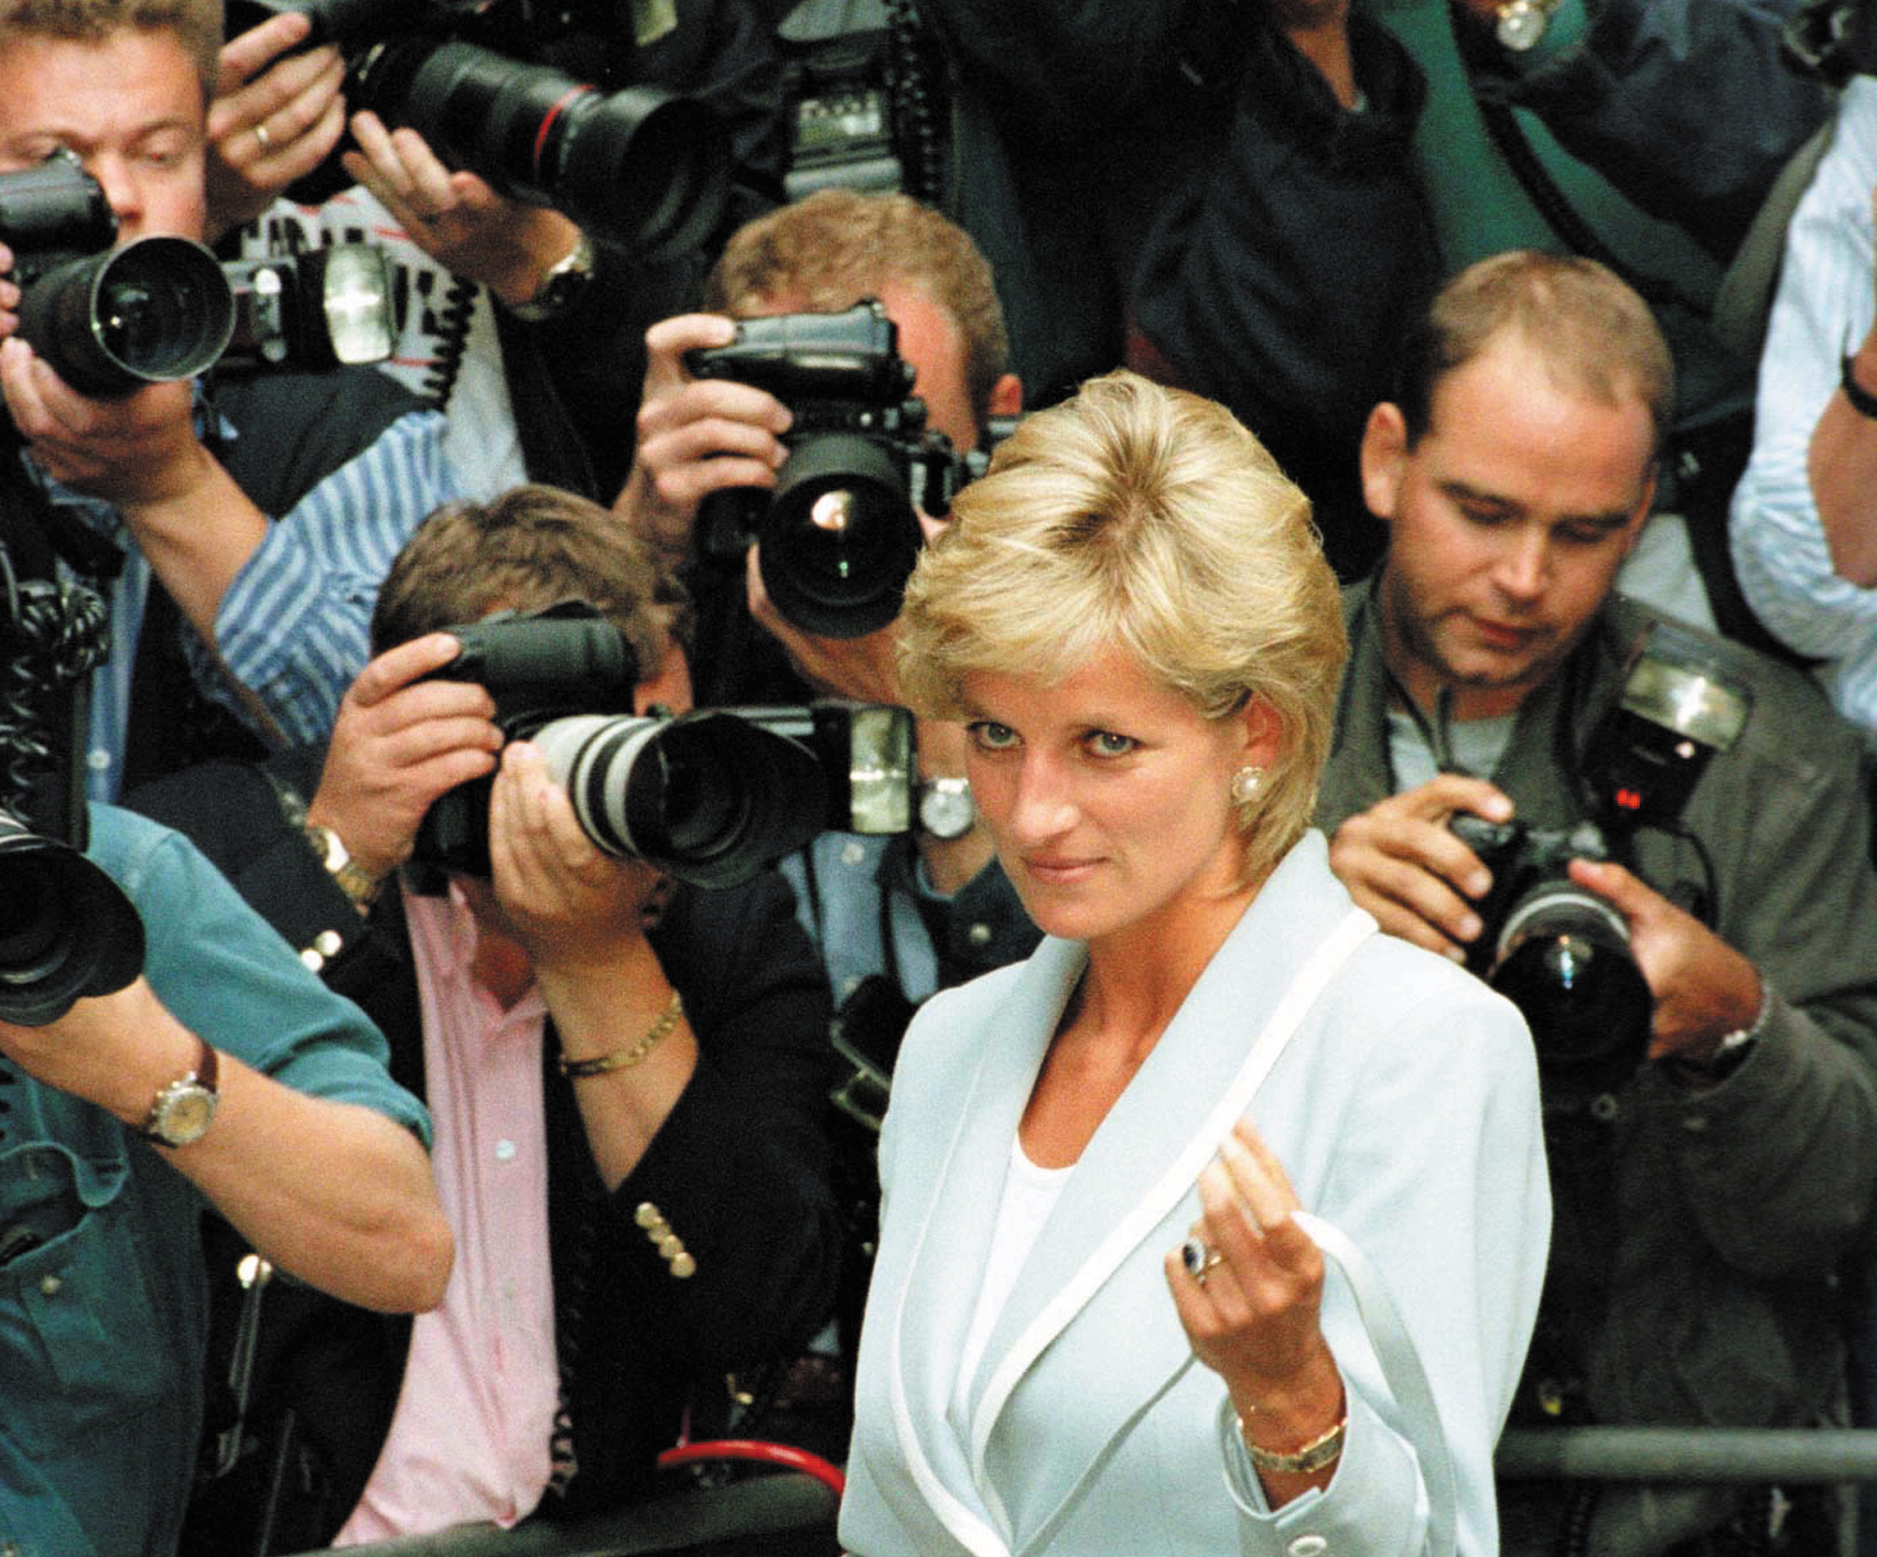 paparazzi chase claims life of princess diana The first 24 hours after the death of princess diana saw a flurry of  paris ritz,  hours before both were killed in a high-speed car chase  in which diana, fayed  and driver henri paul lost their lives  0028-0030: first two police officers arrive  and start to cordon off the accident from gathering paparazzi.